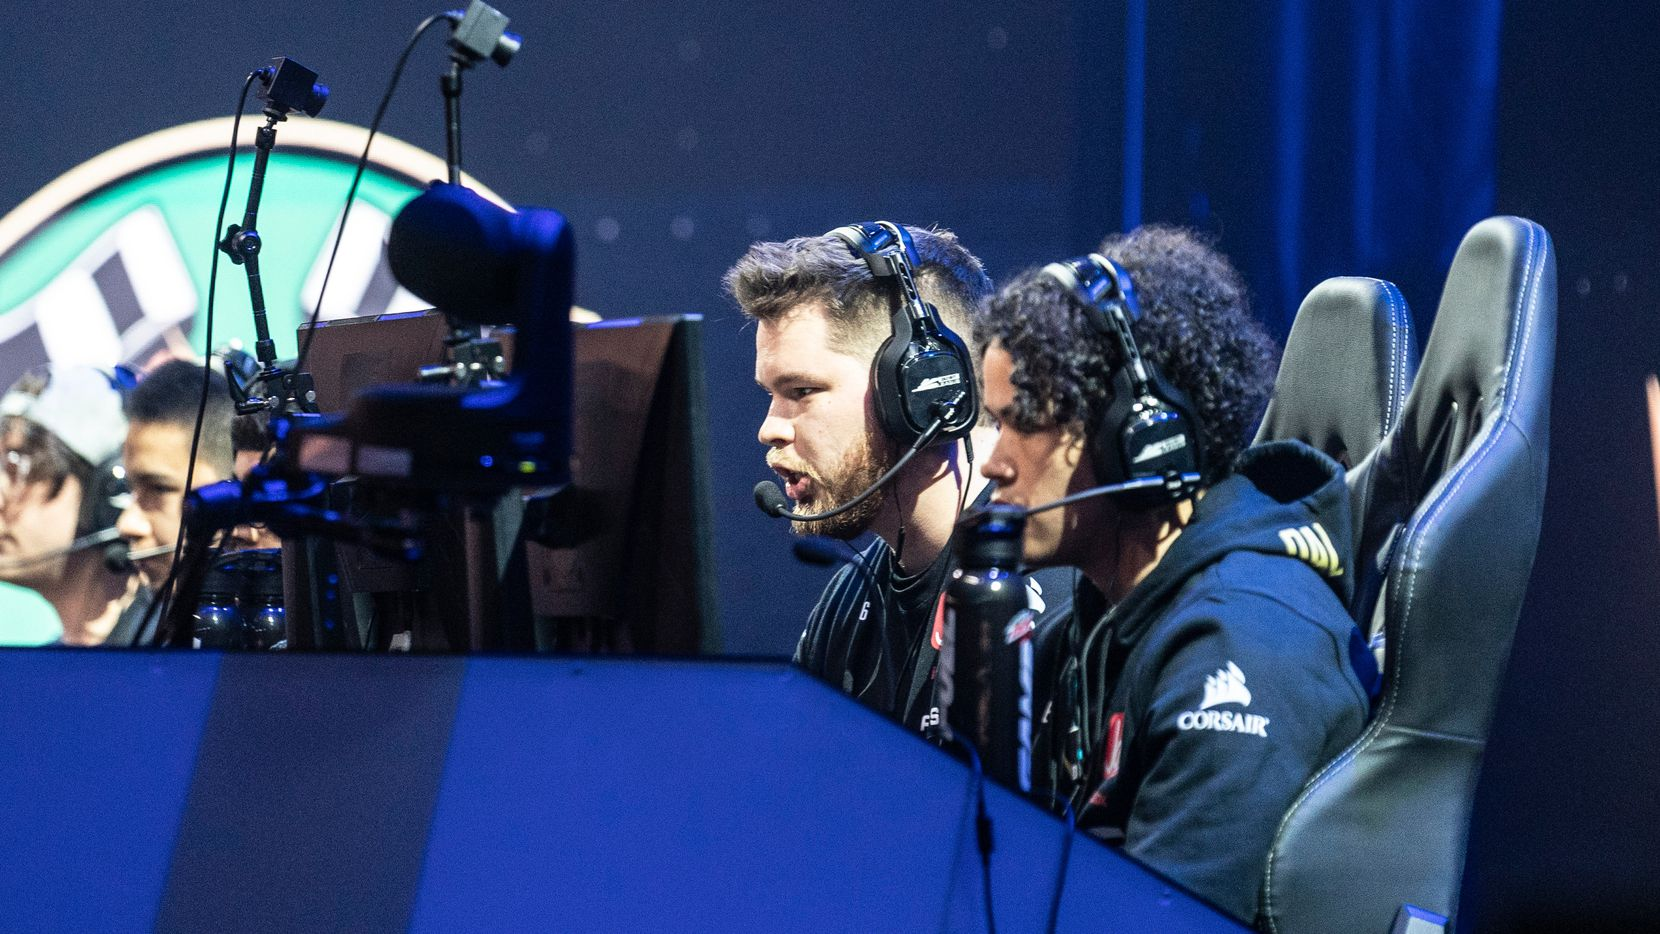 Crimsix (Ian Porter), second from right, and Huke (Cuyler Garland) work alongside their teammates as Dallas Empire competes against Chicago Huntsmen in the Call of Duty League Launch Weekend at the Armory in Minneapolis, Minn., January 24, 2020.